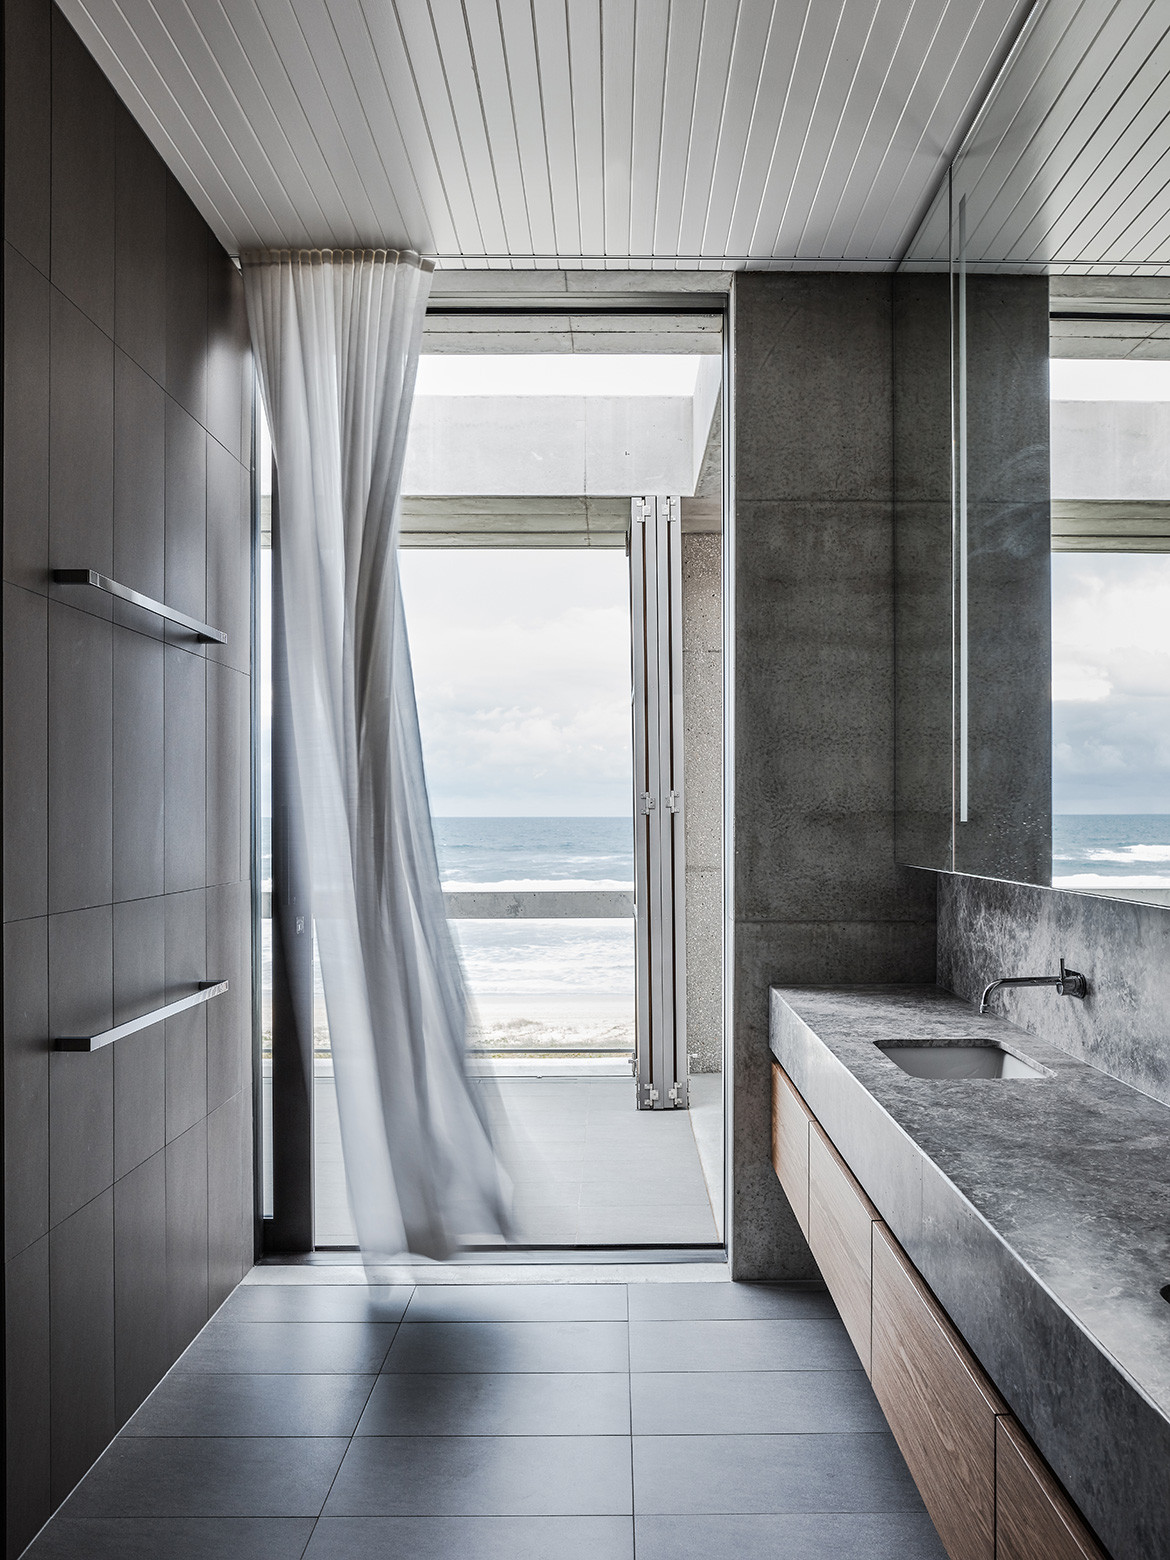 Bathroom of Mermaid Beach Residence by B.E. Architecture featured in Beautifully Brutalist Interiors Of Houses Across Asia Pacific on habitusliving.com cc Andy MacPherson